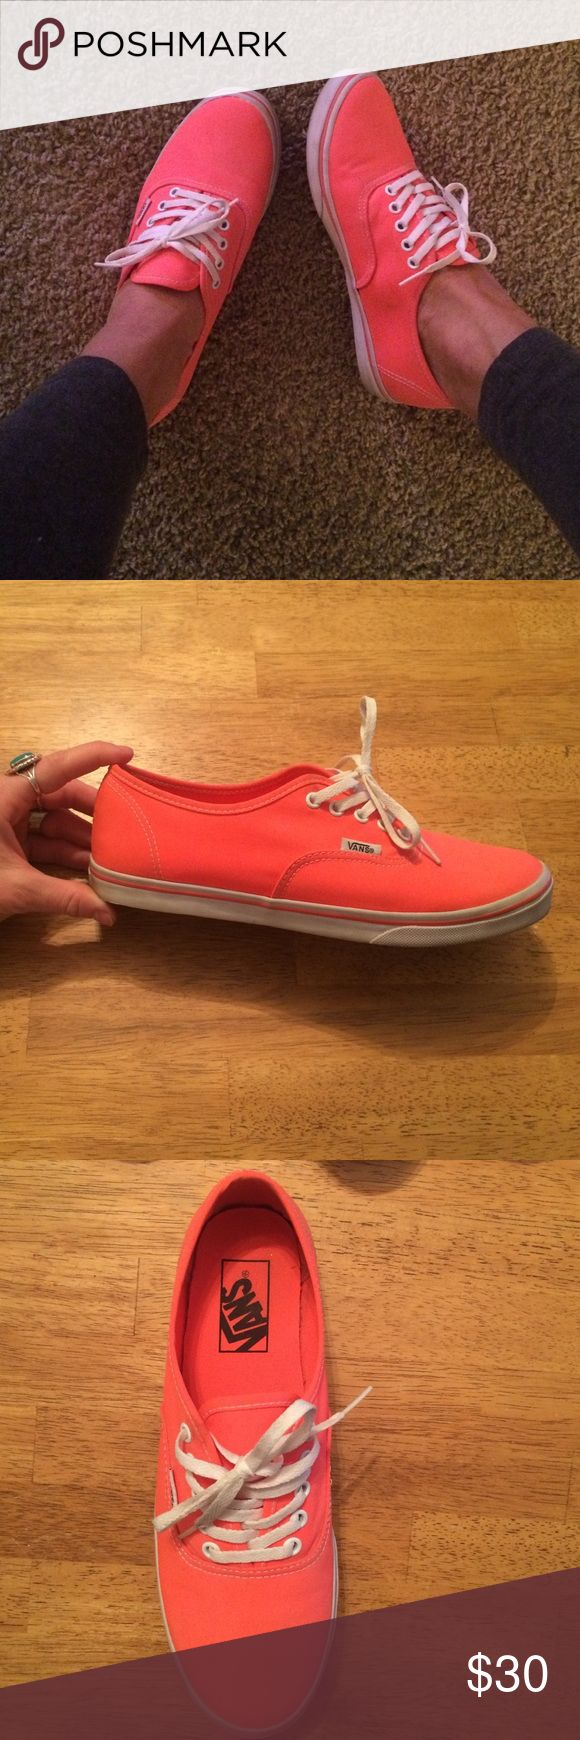 Woman's Neon Coral Vans these are Authentic lo pro style neon coral vans. Only worn a couple times and in great condition.  very light dark spot on the inside of one shoe; I tried to show in the last picture but barely noticeable! Vans Shoes Sneakers